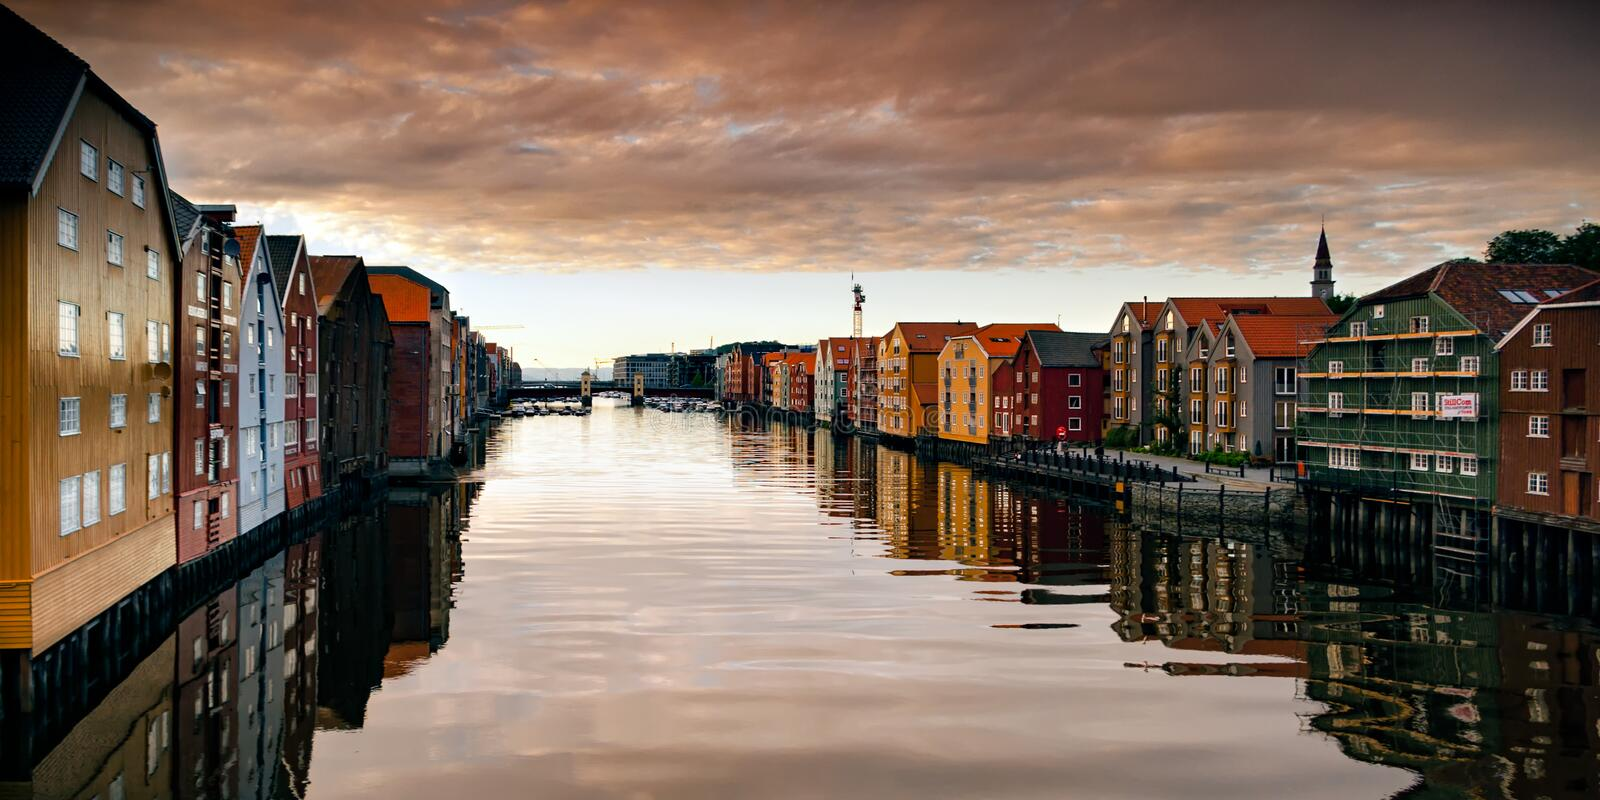 River Nid or Nidelva running through Trondheim, Norway. This is the River Nid or Nidelva, which runs through Trondheim to the Trondheims fjord and was taken royalty free stock photography